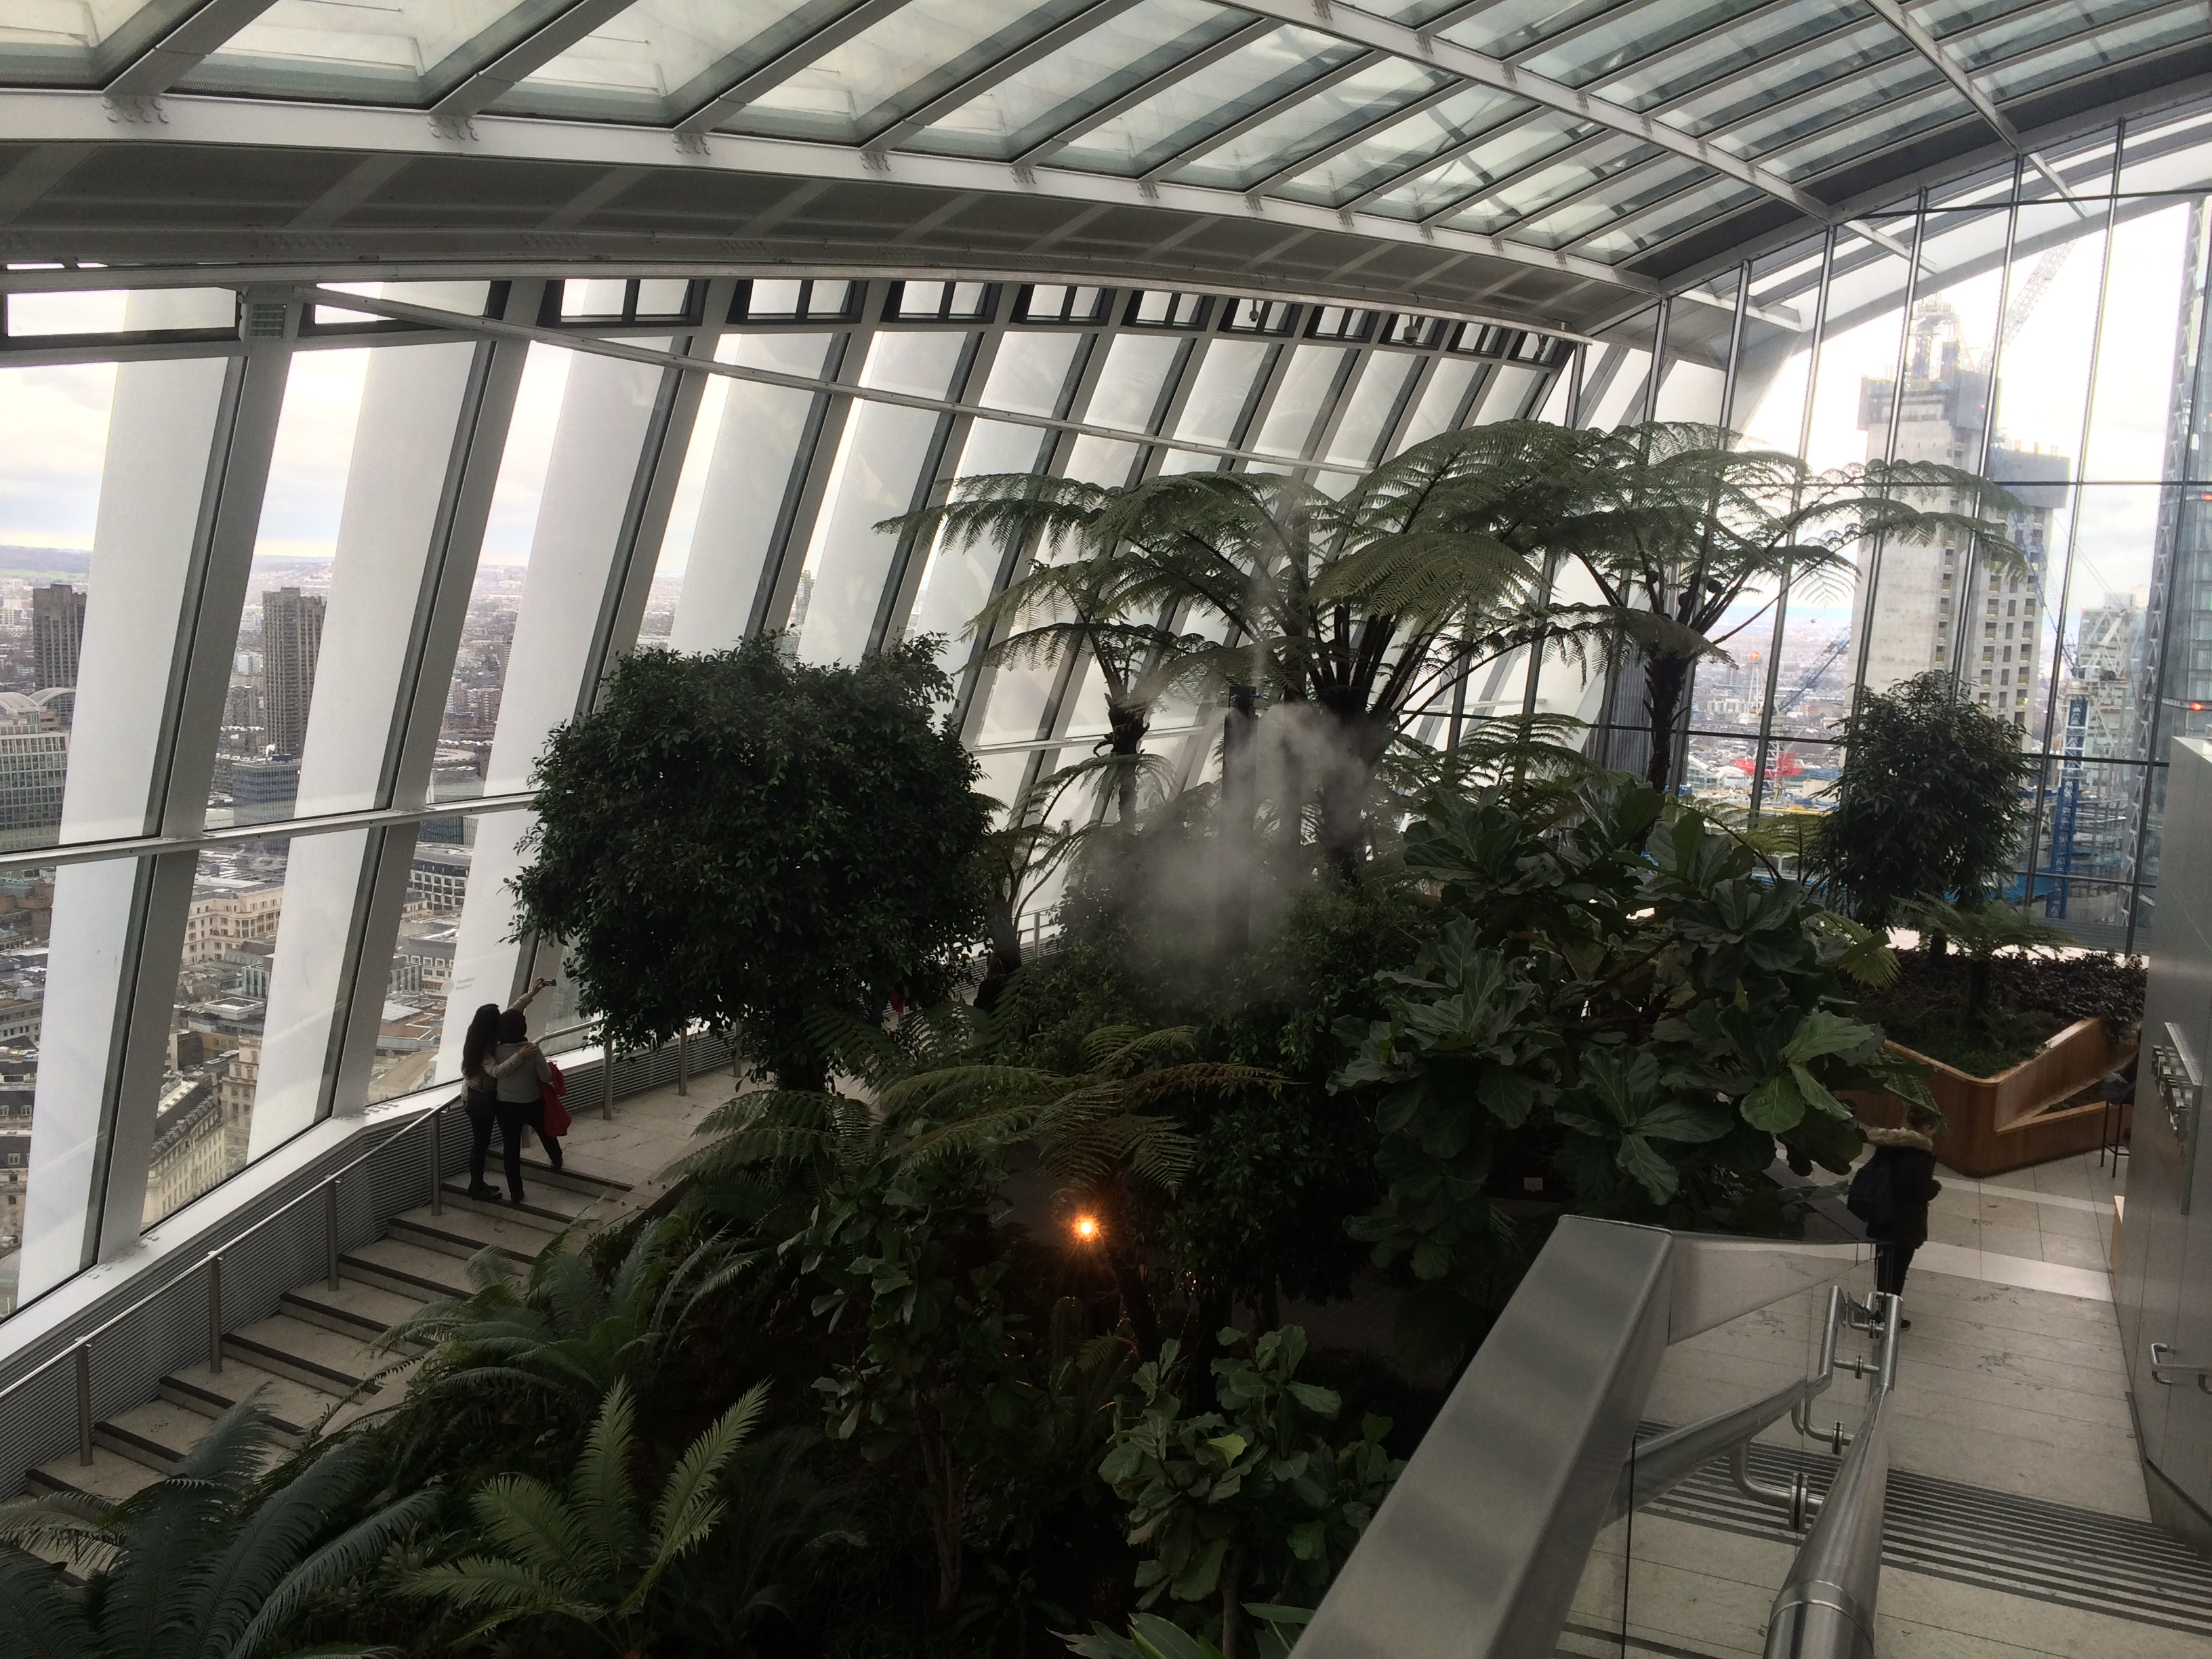 Inside the Sky Garden in London, a rain forest design and windows looking out over London.